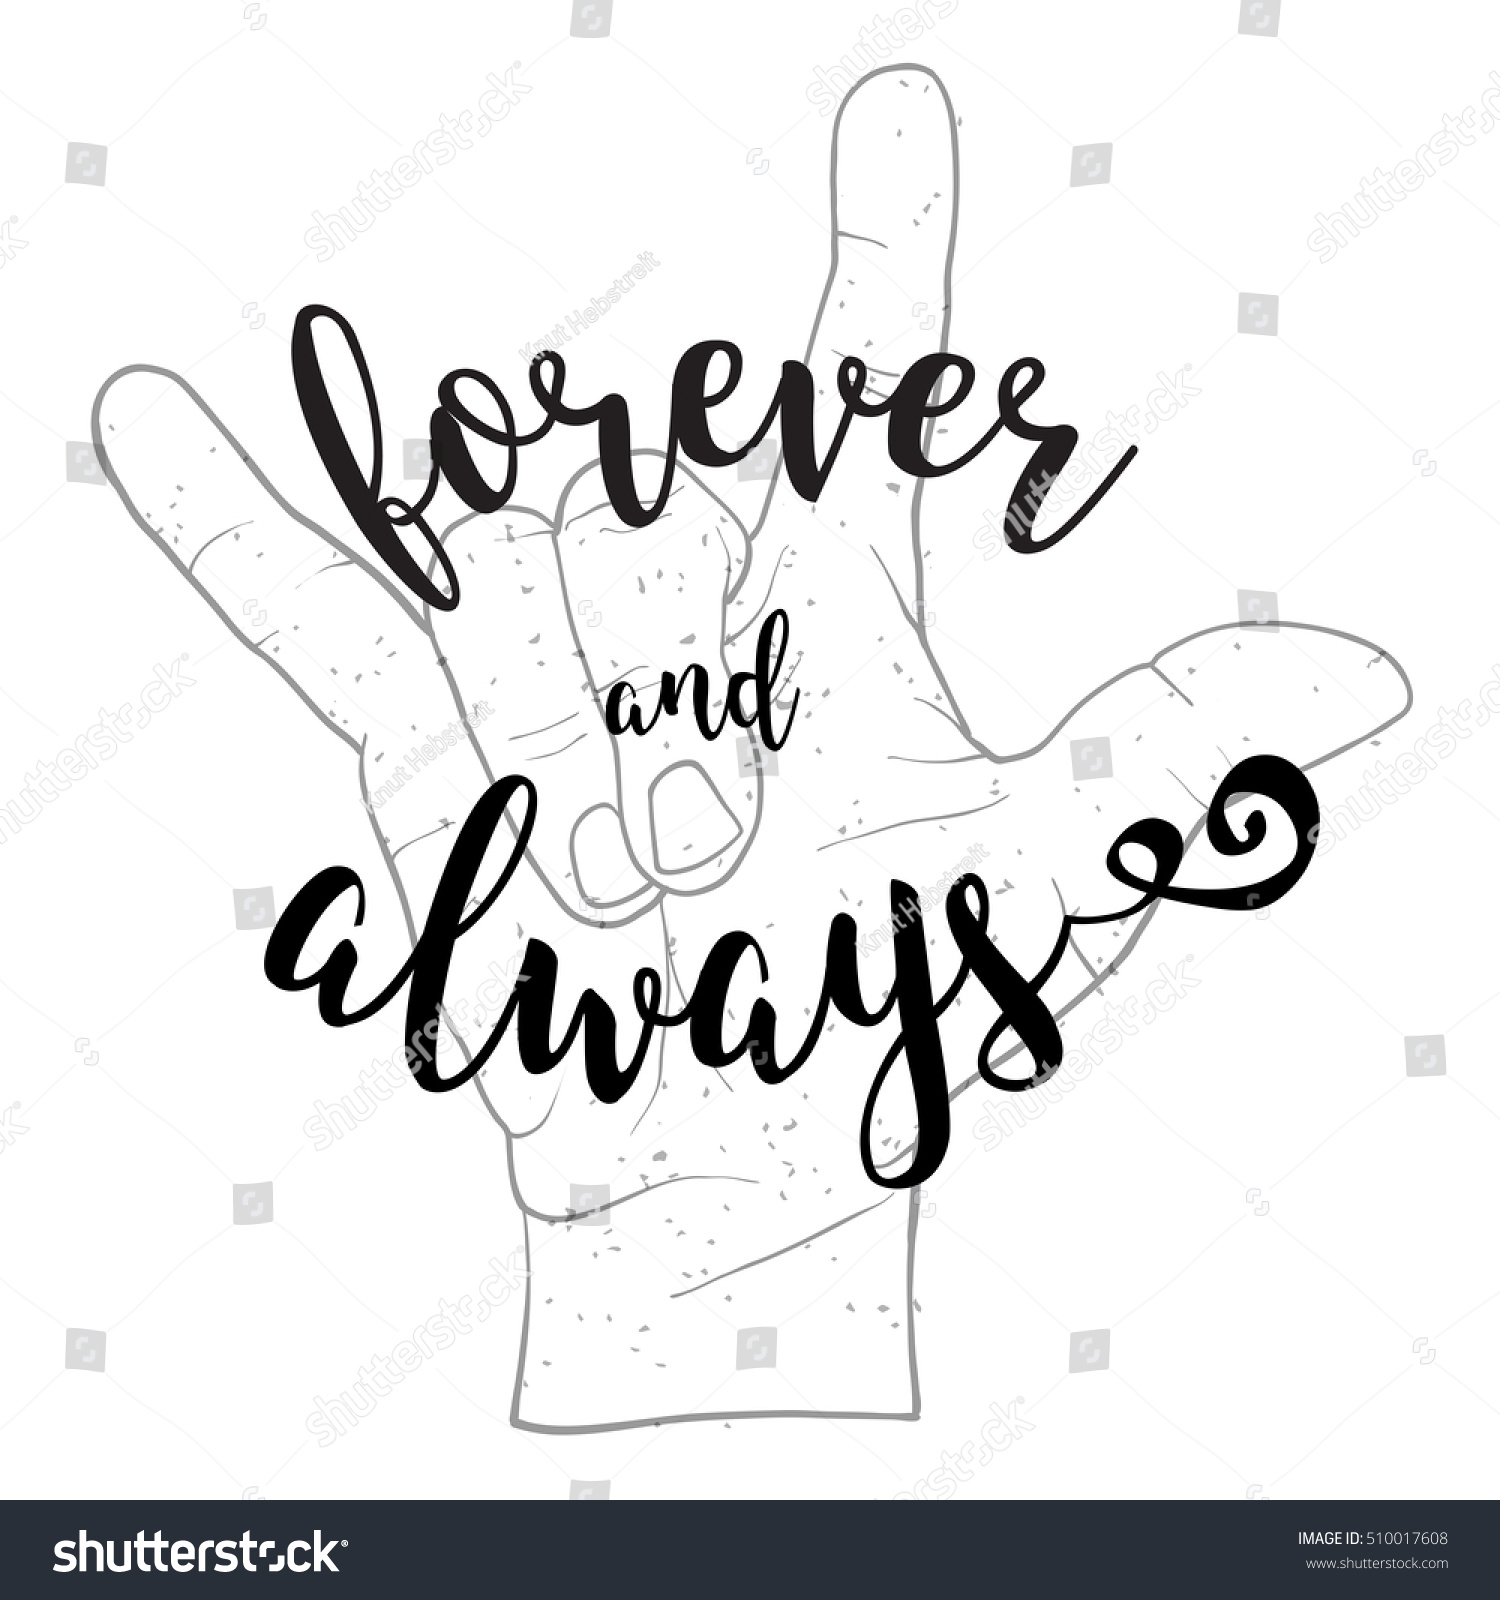 Forever always quote devil hand symbol stock vector 510017608 forever and always quote with devil hand symbol hand written typeface sketched vector artwork biocorpaavc Gallery